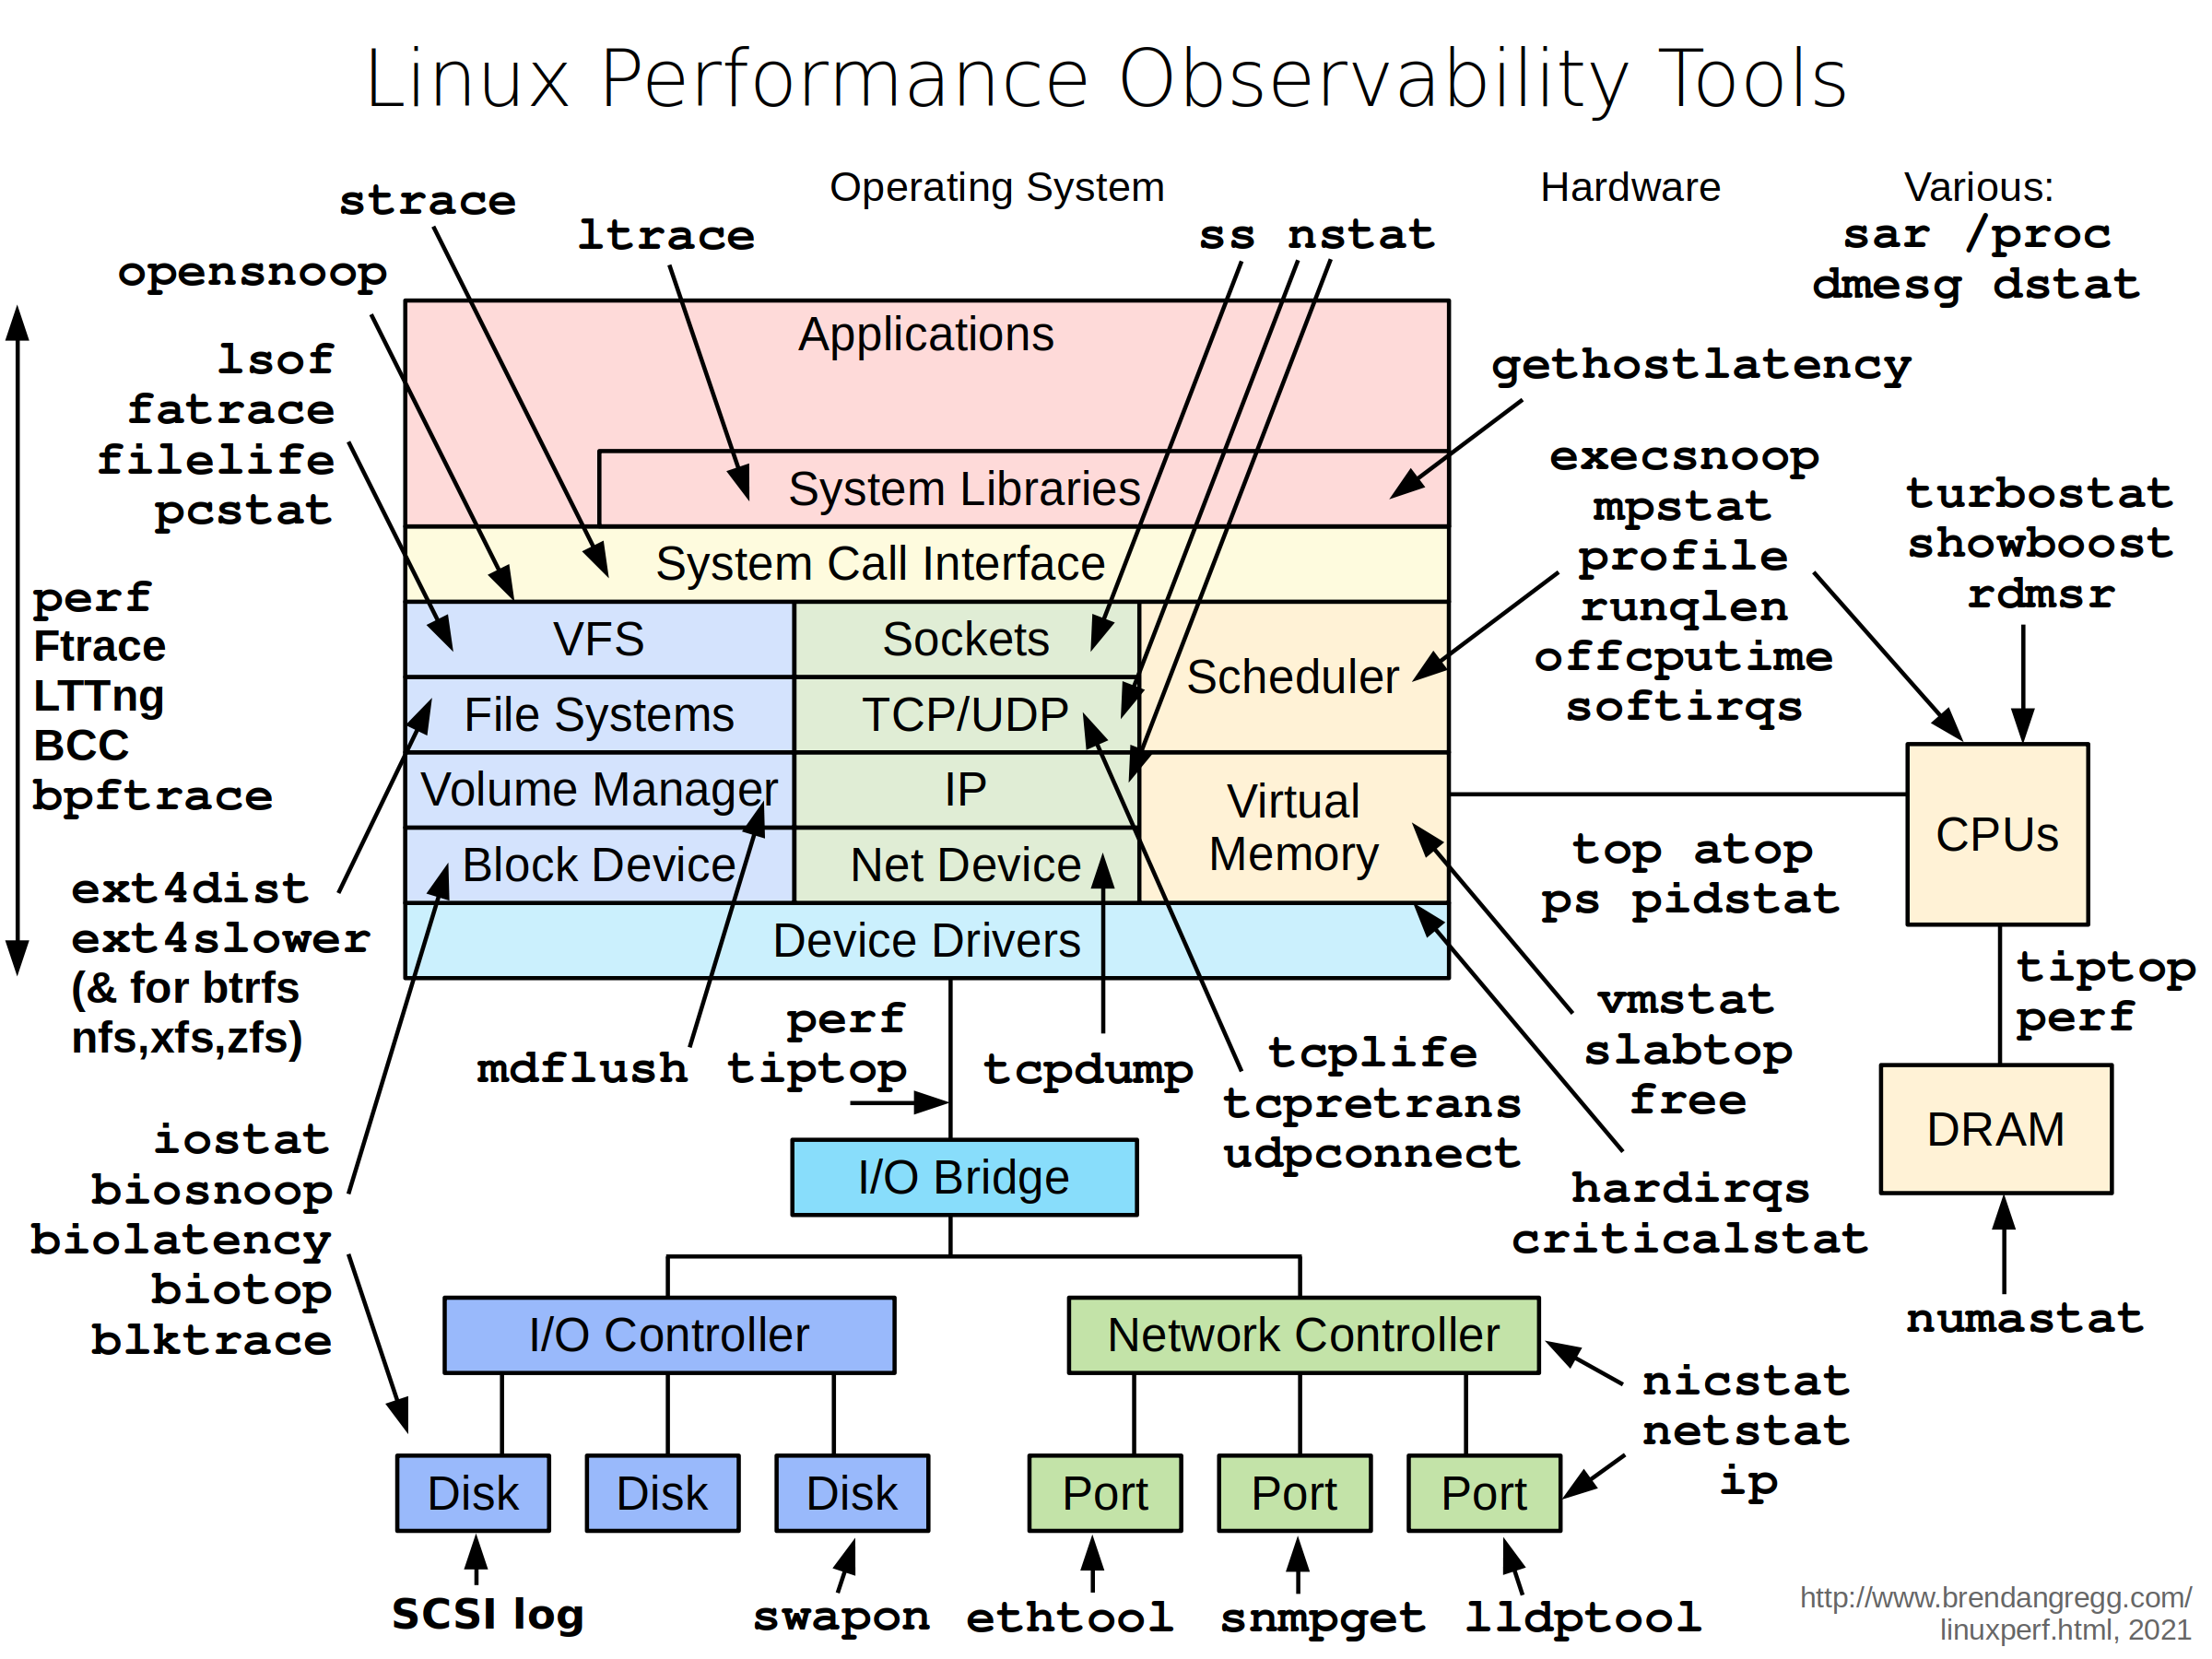 http://brendangregg.com/Perf/linux_observability_tools.png